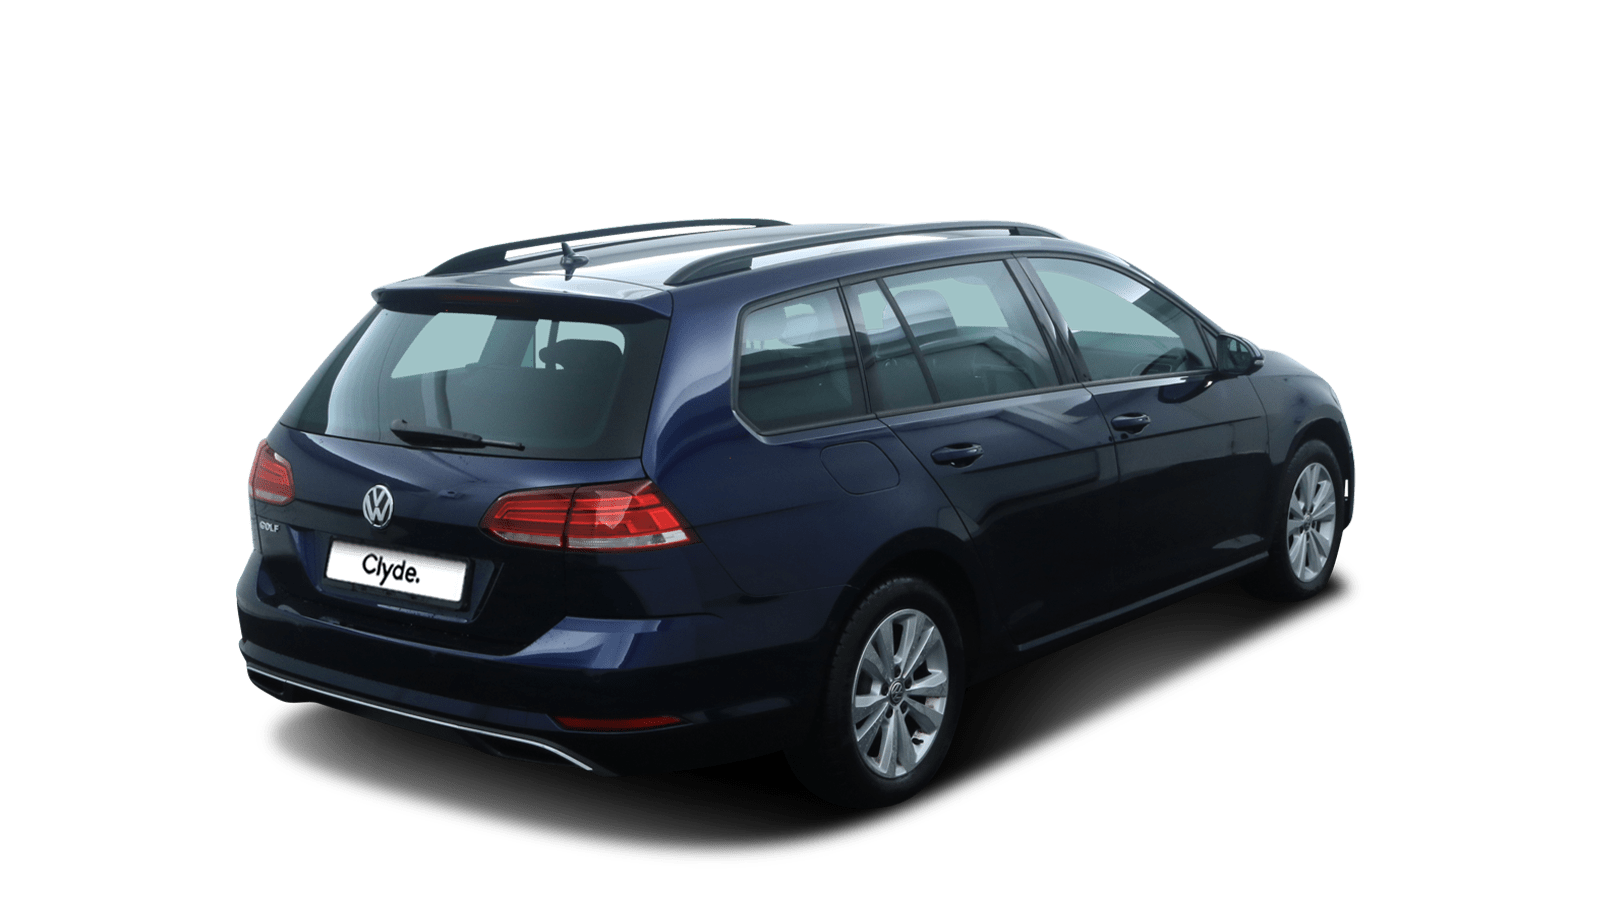 VW Golf Variant Blue back - Clyde car subscription